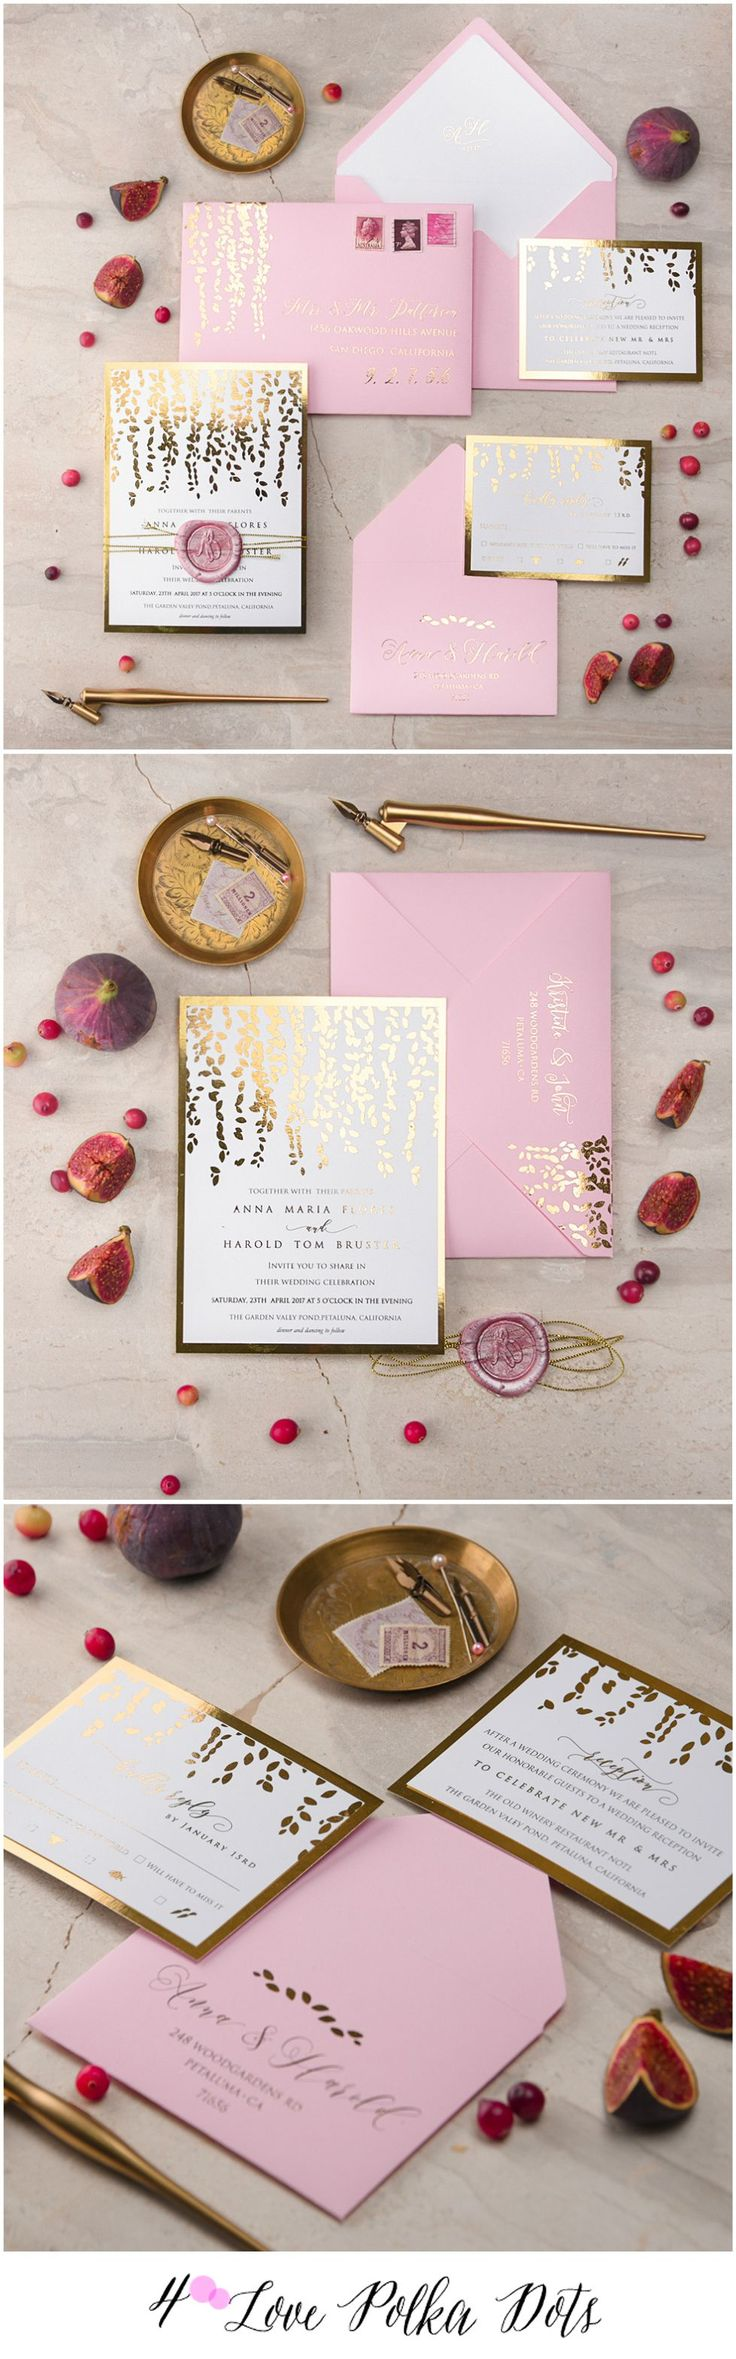 Pink & Gold shiny wedding invitations with gold foil and a wax stamp